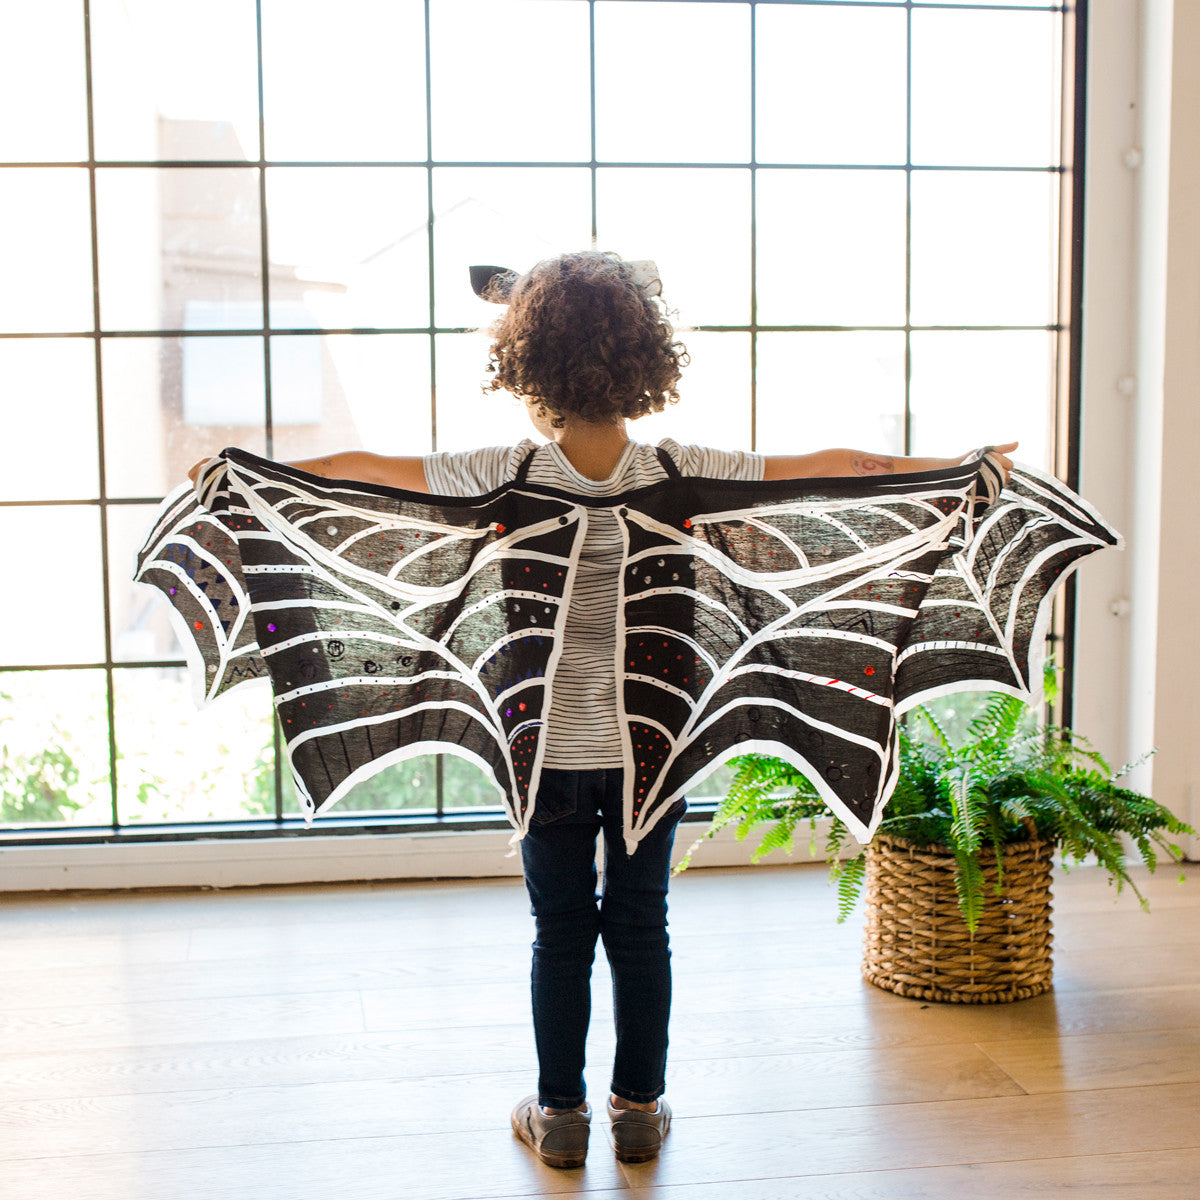 Design Your Own Bat Wings and Ears